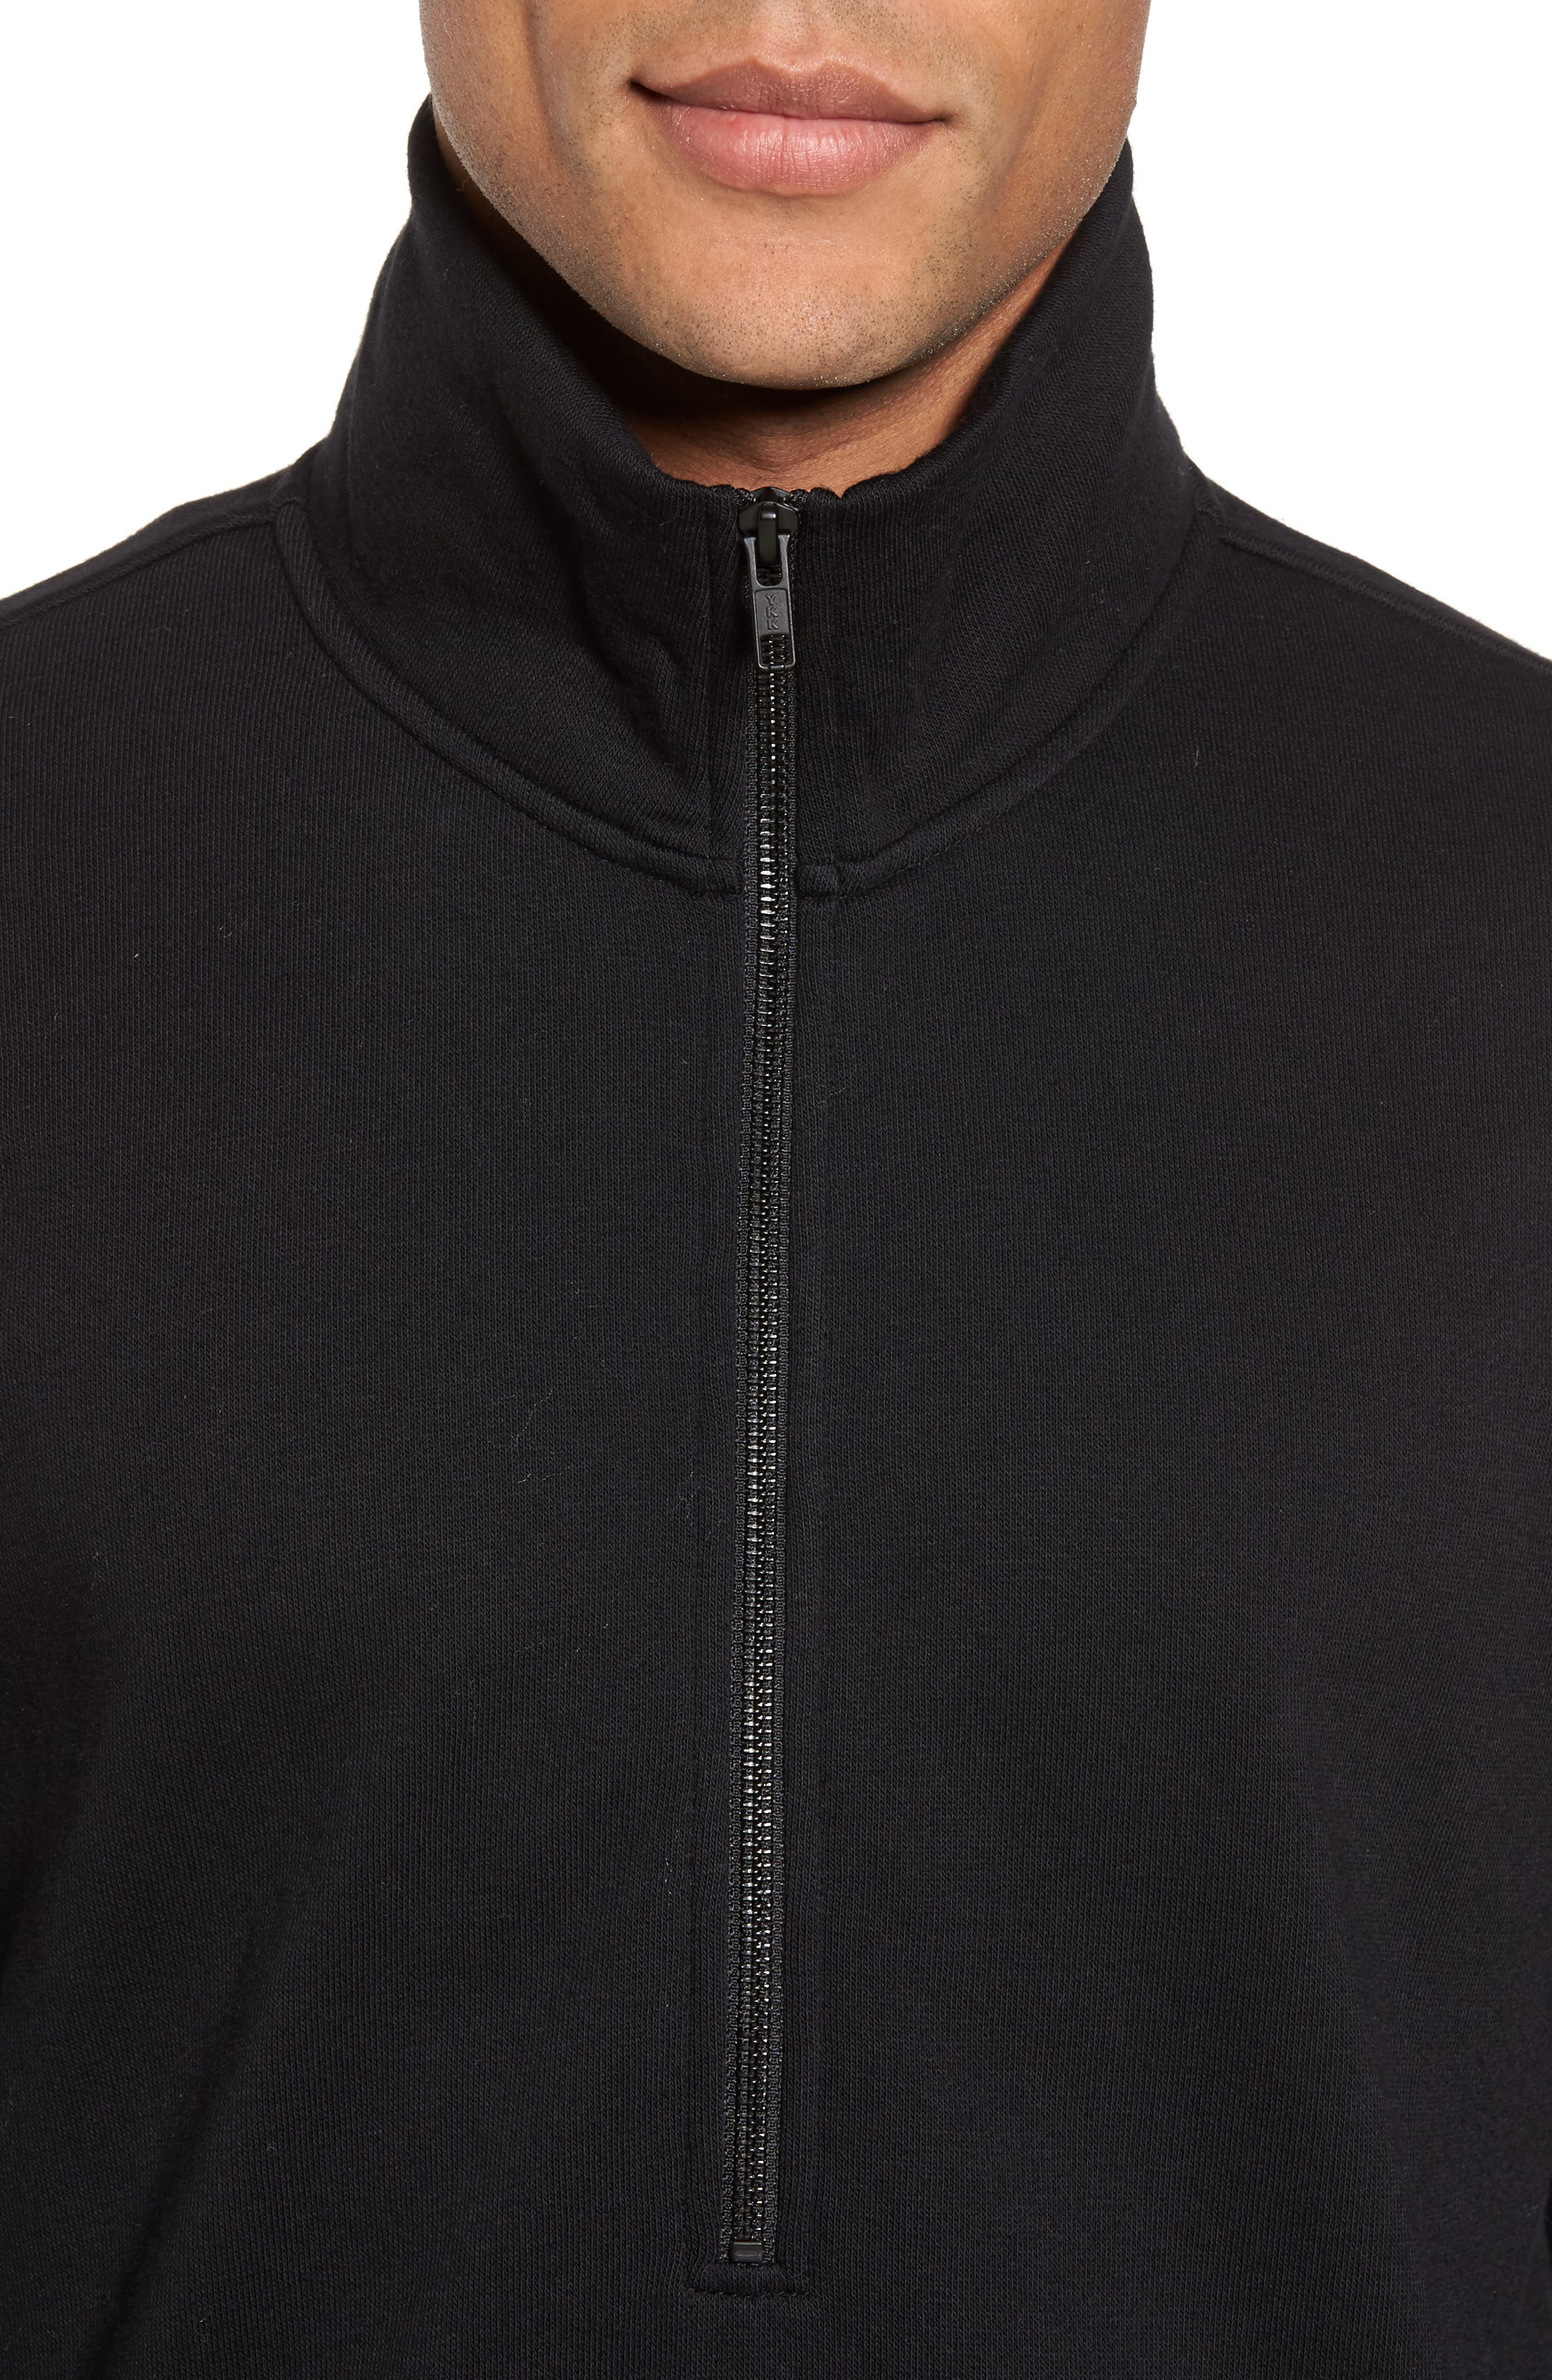 Quarter Zip Fleece Pullover,                             Alternate thumbnail 4, color,                             Black